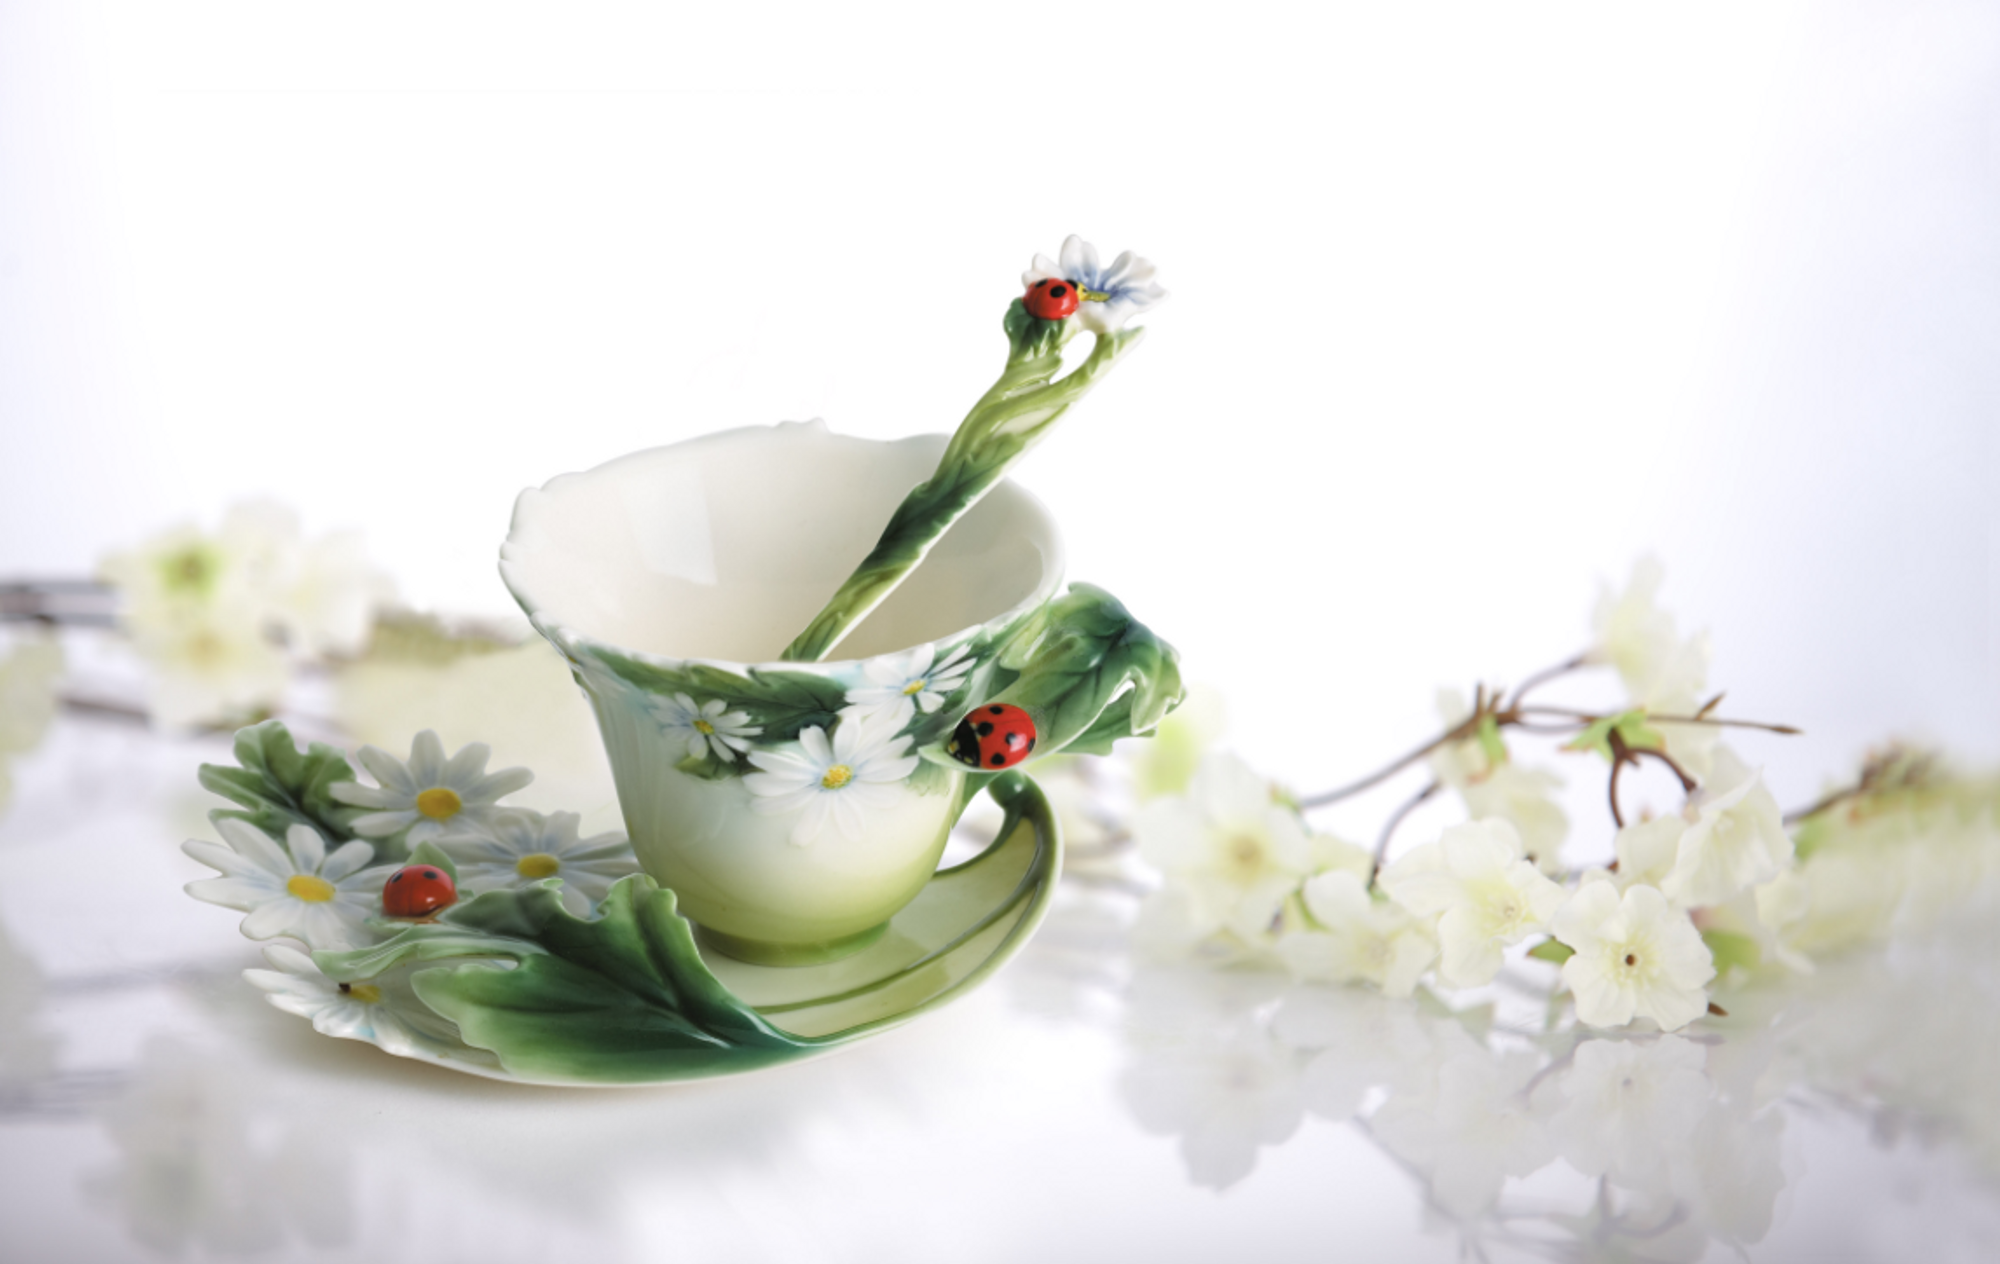 ... Ladybug Cup Saucer Spoon Set | Franz Porcelain | Fz00034 Great Pictures